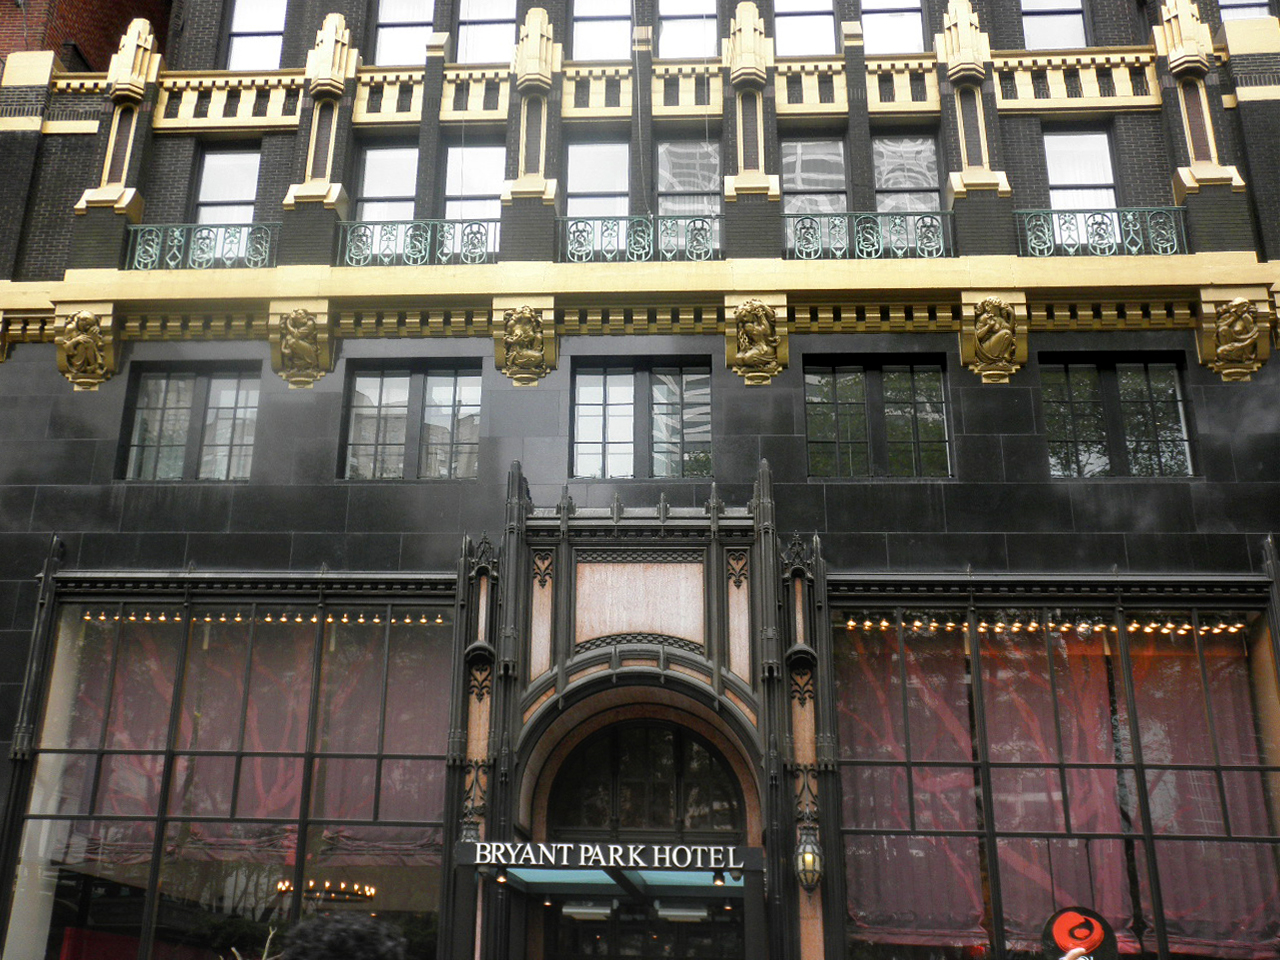 First three floors of the American Radiator Building, today the Bryant Park Hotel, highlighting the buildings great detail as the pedestrian level